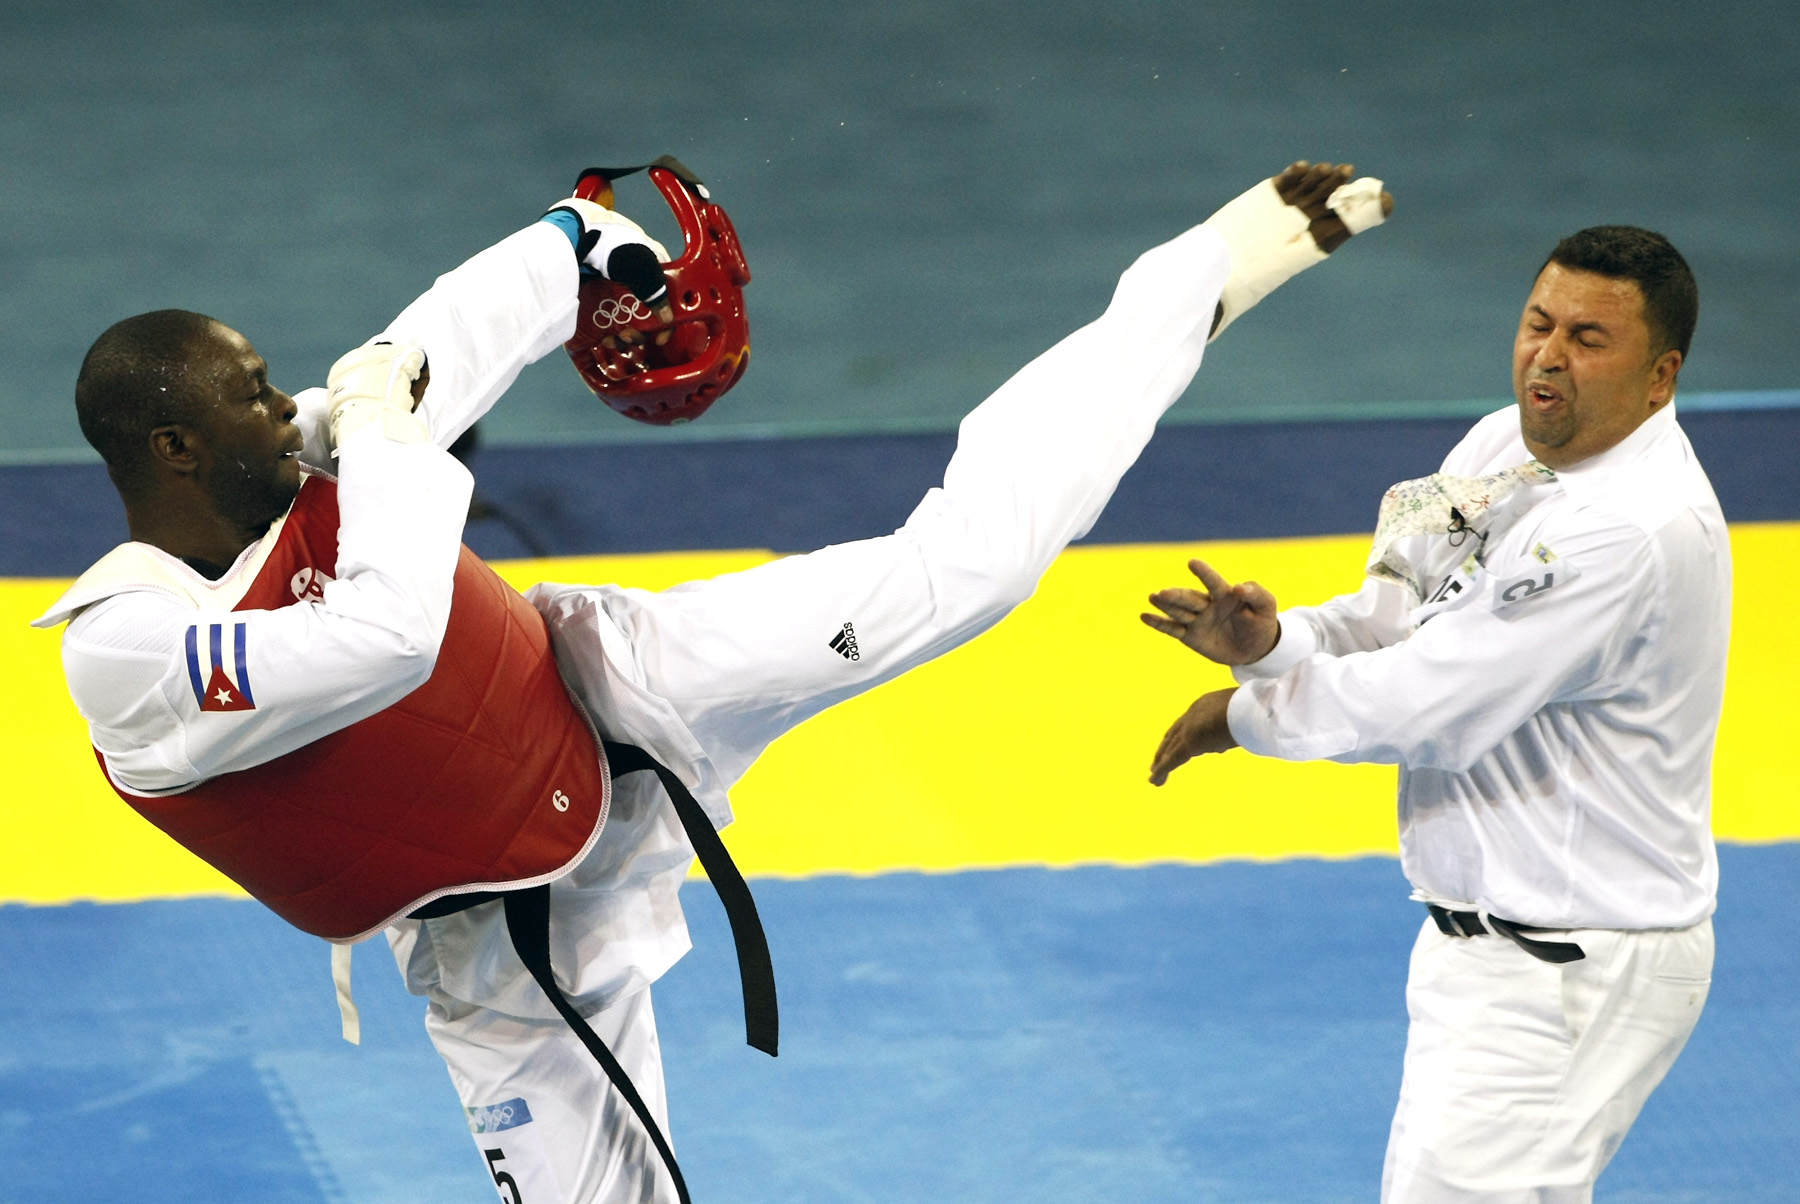 Angel Valodia Matos Of Cuba Kicks Out At The Referee During The Men's +80kg Bronze Medal Taekwondo Competition Against Arman Chilmanov Of Kazakhstan At The Beijing 2008 Olympic Games